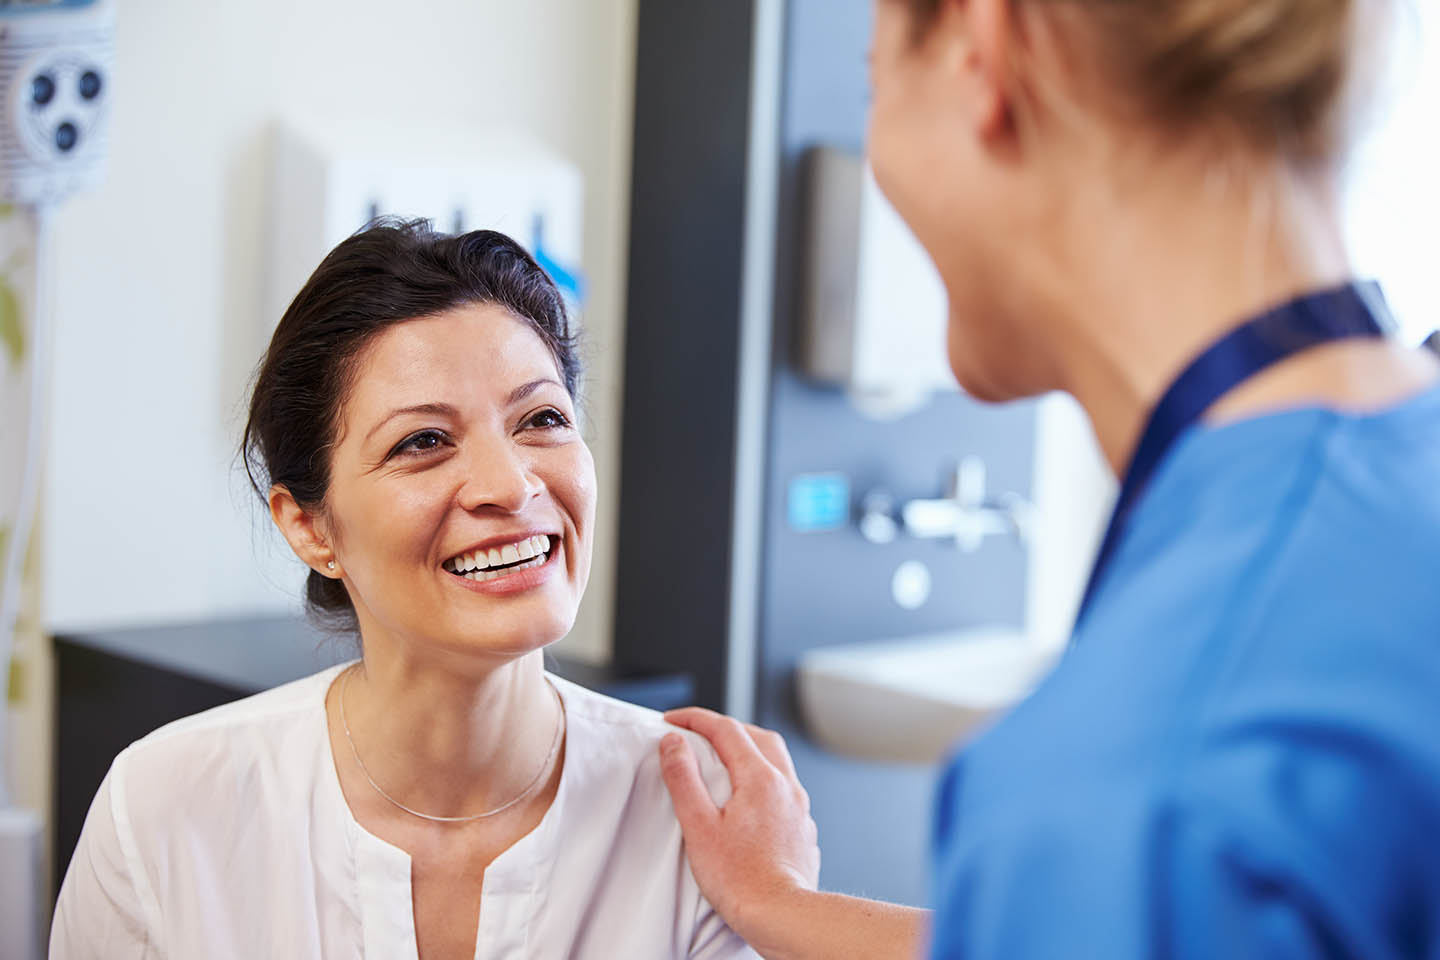 dental hygienist talking and laughing with a patient